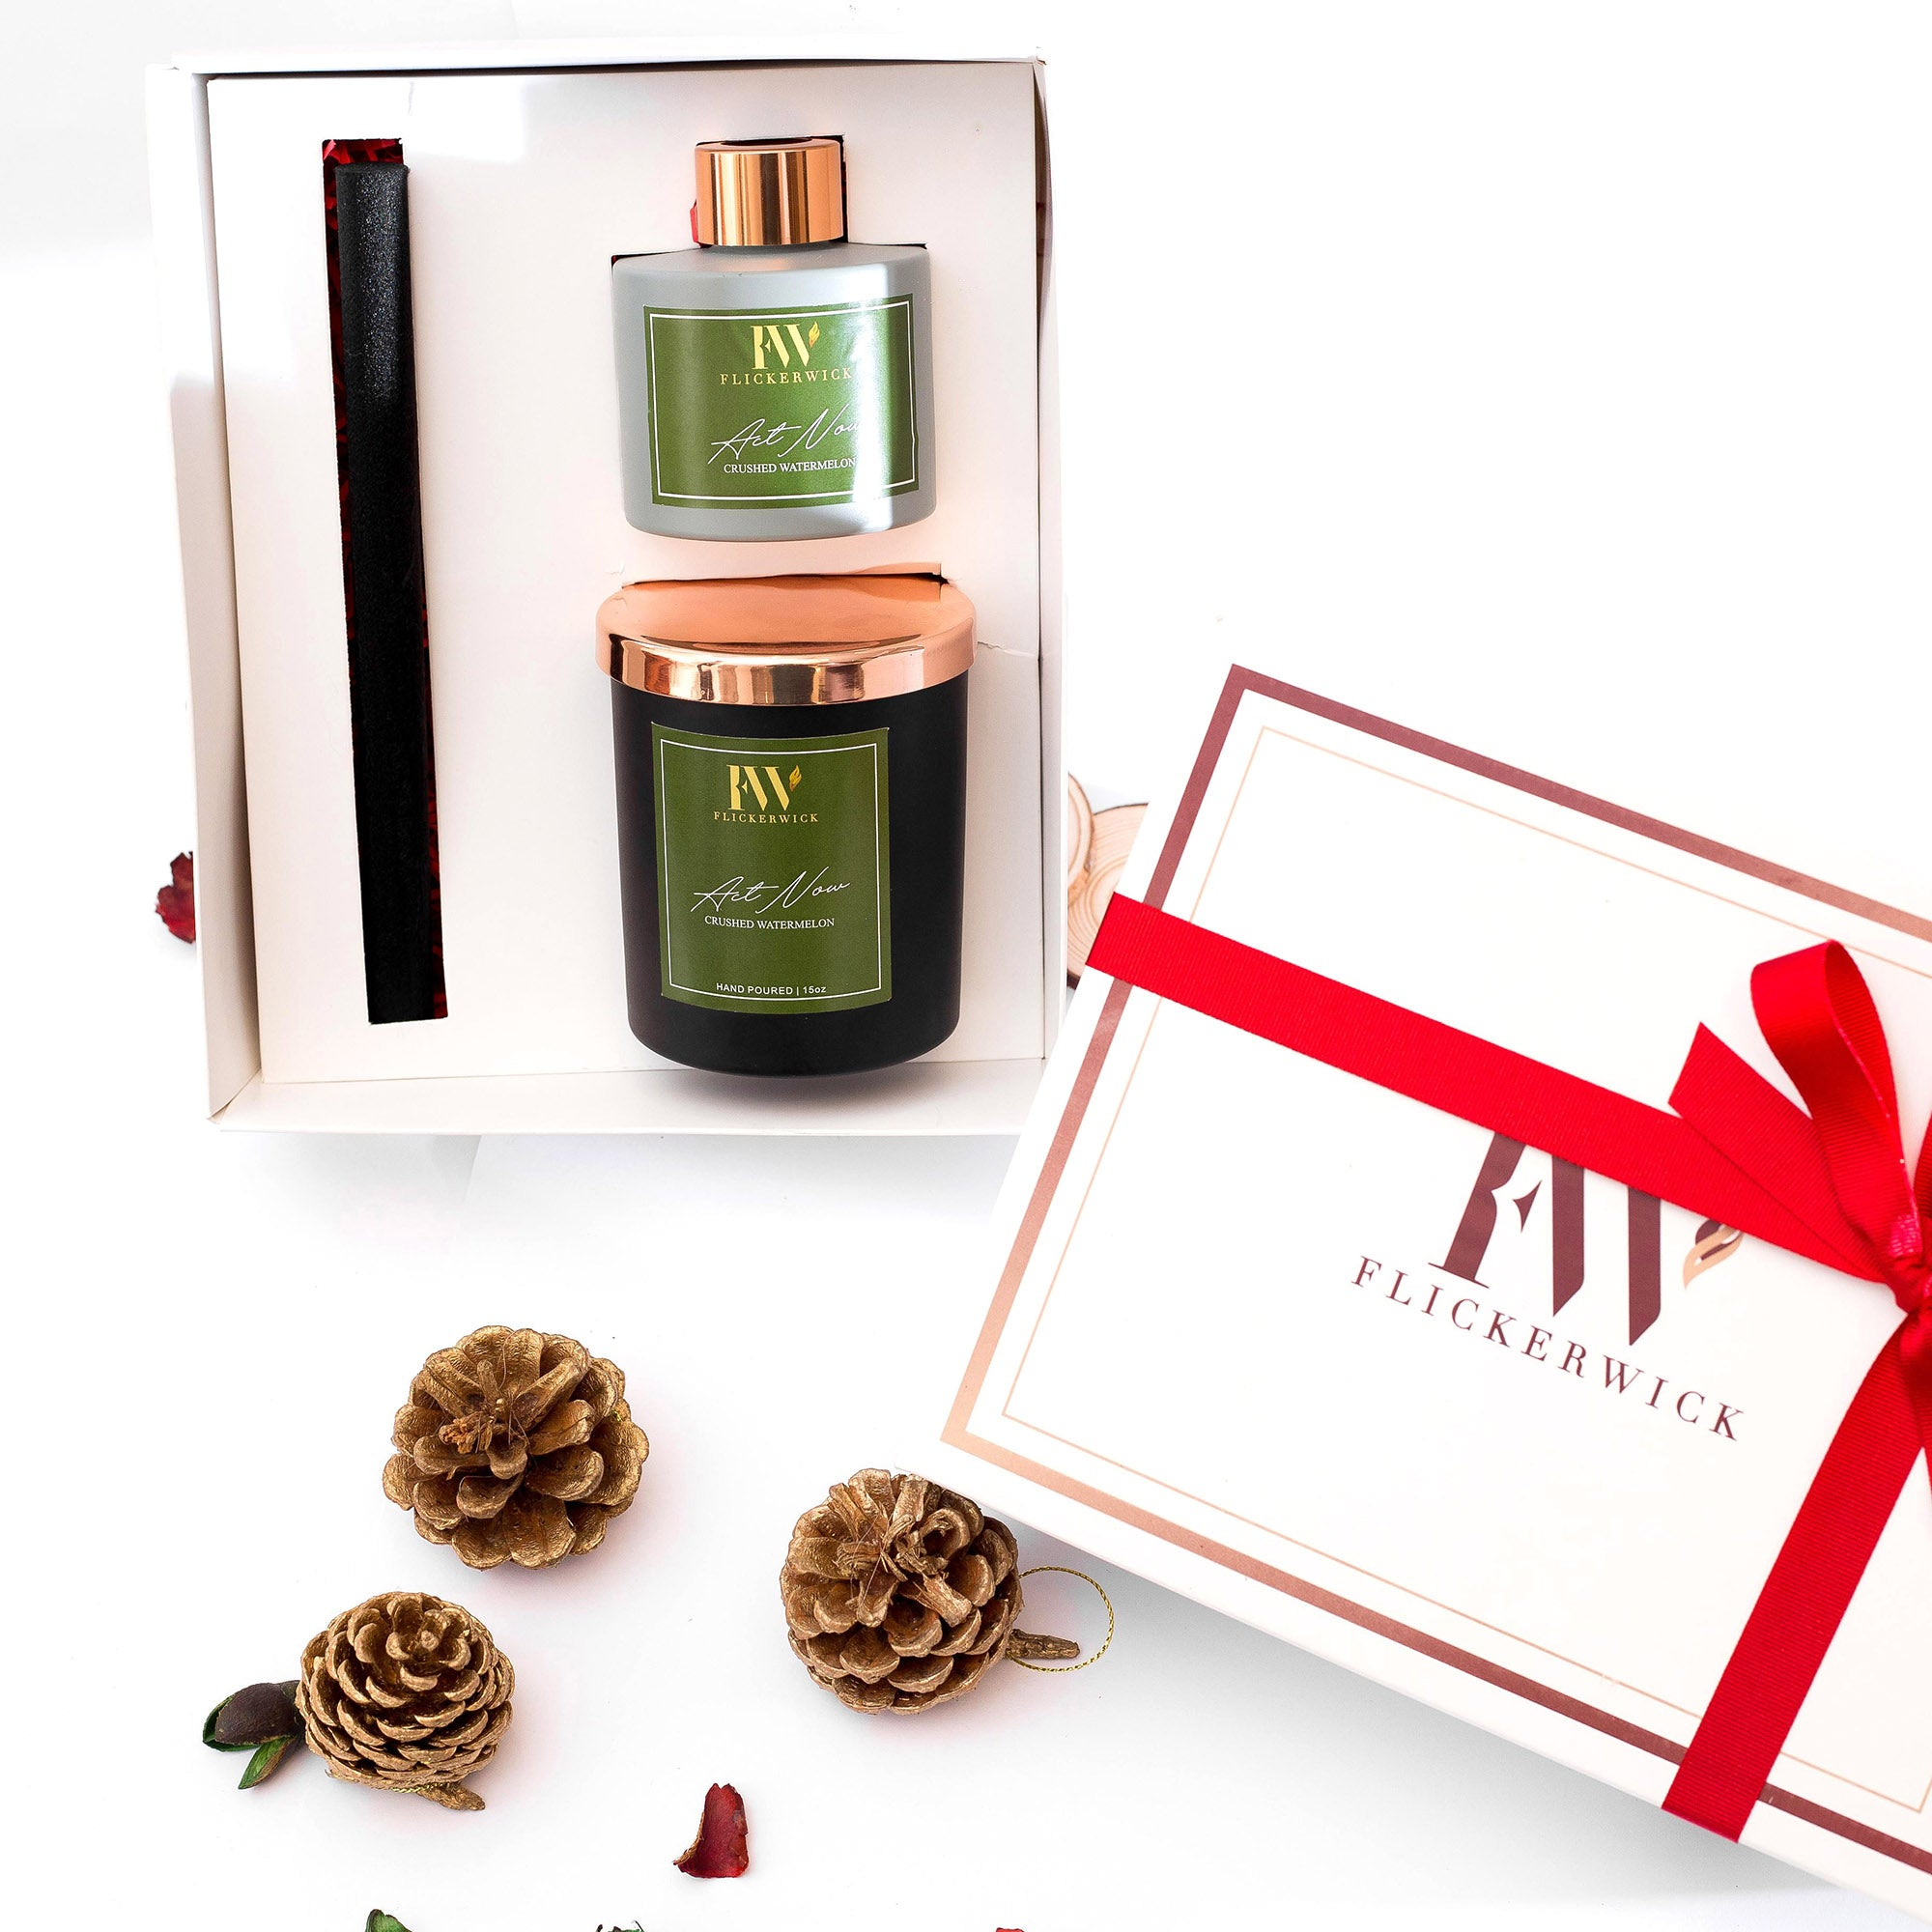 Flickerwick Candles: The Holiday Gift Set